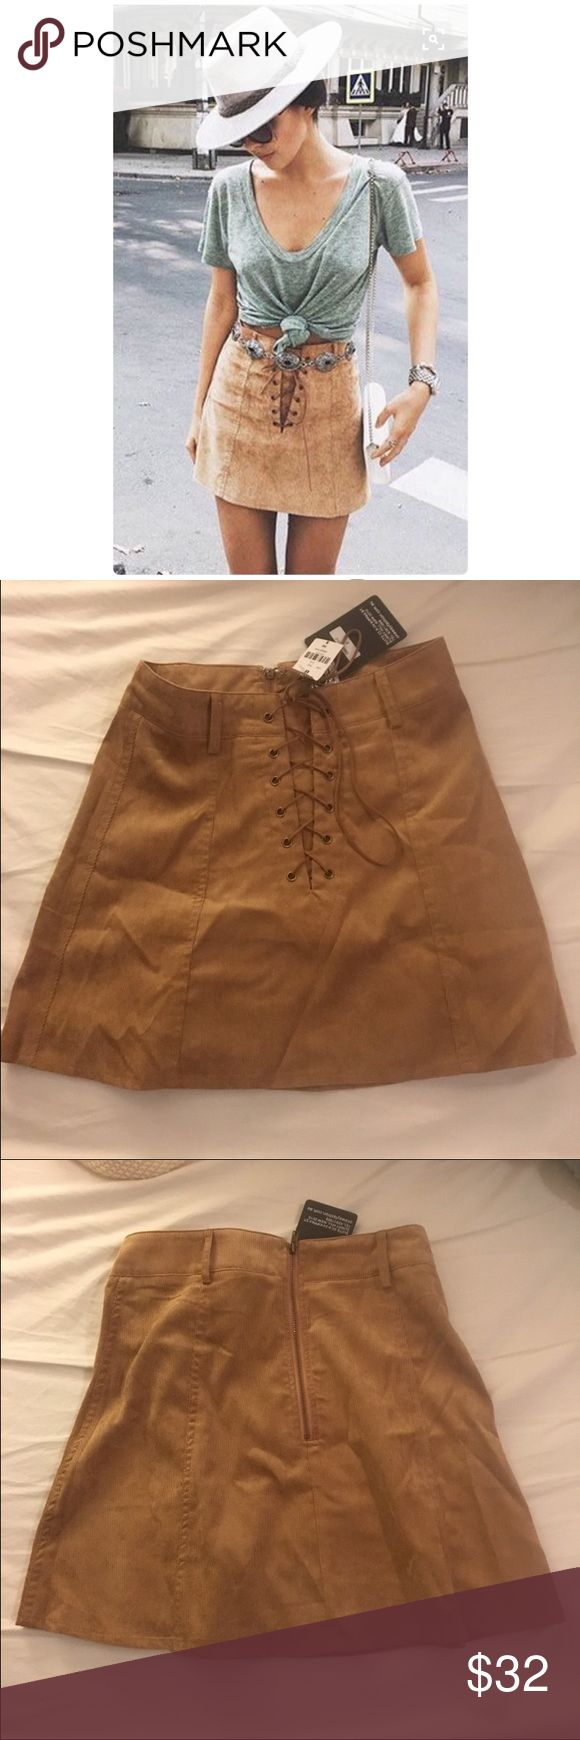 LF tan lace up skirt size small Amazing tan corduroy lace up skirt from LF in size small. Tag says size 8 which is Australian size 8 which is equivalent to a small. New with tags! LF Skirts Mini